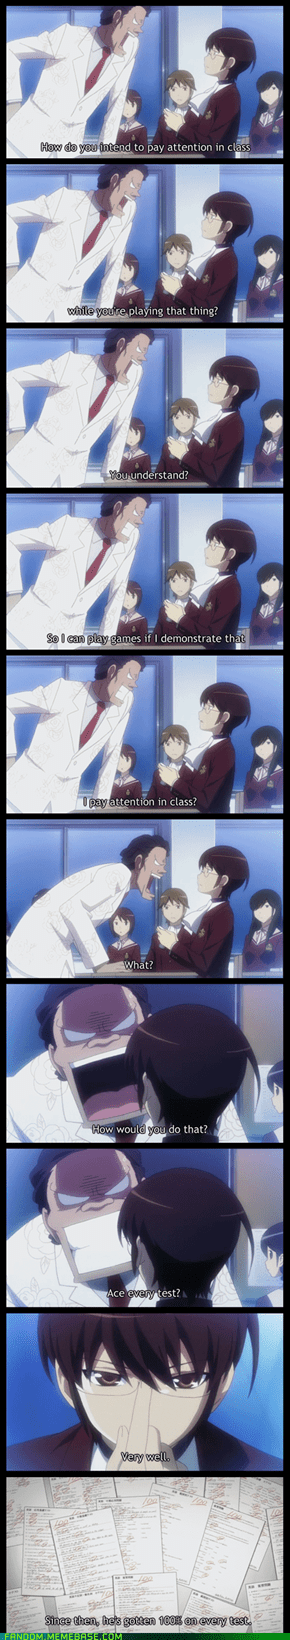 Keima, one of Anime's #1 Smartasses